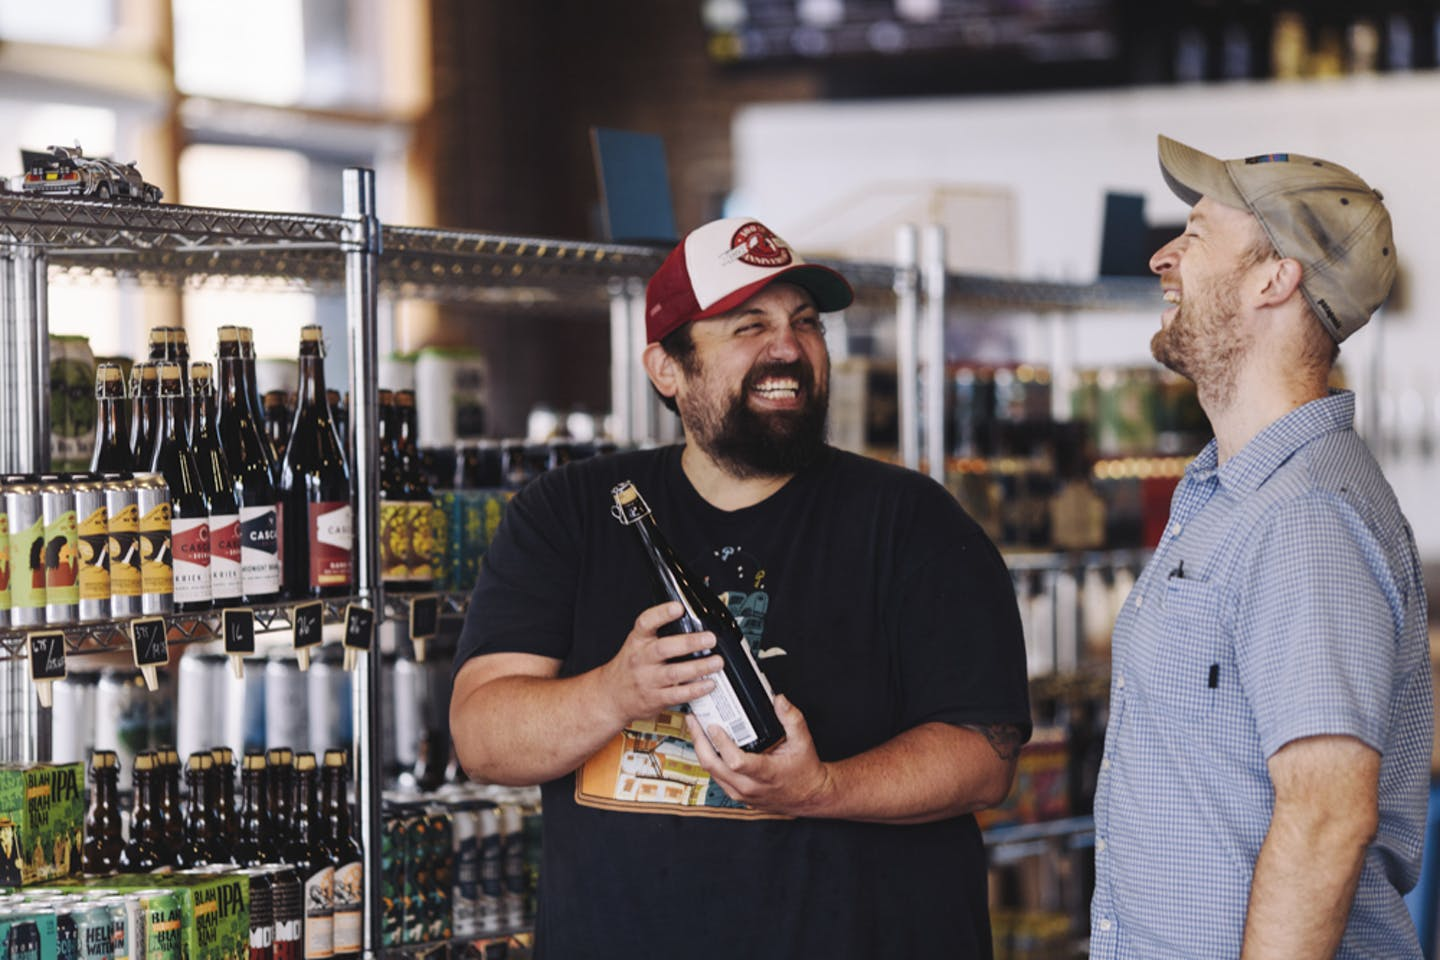 Owners talking about beer